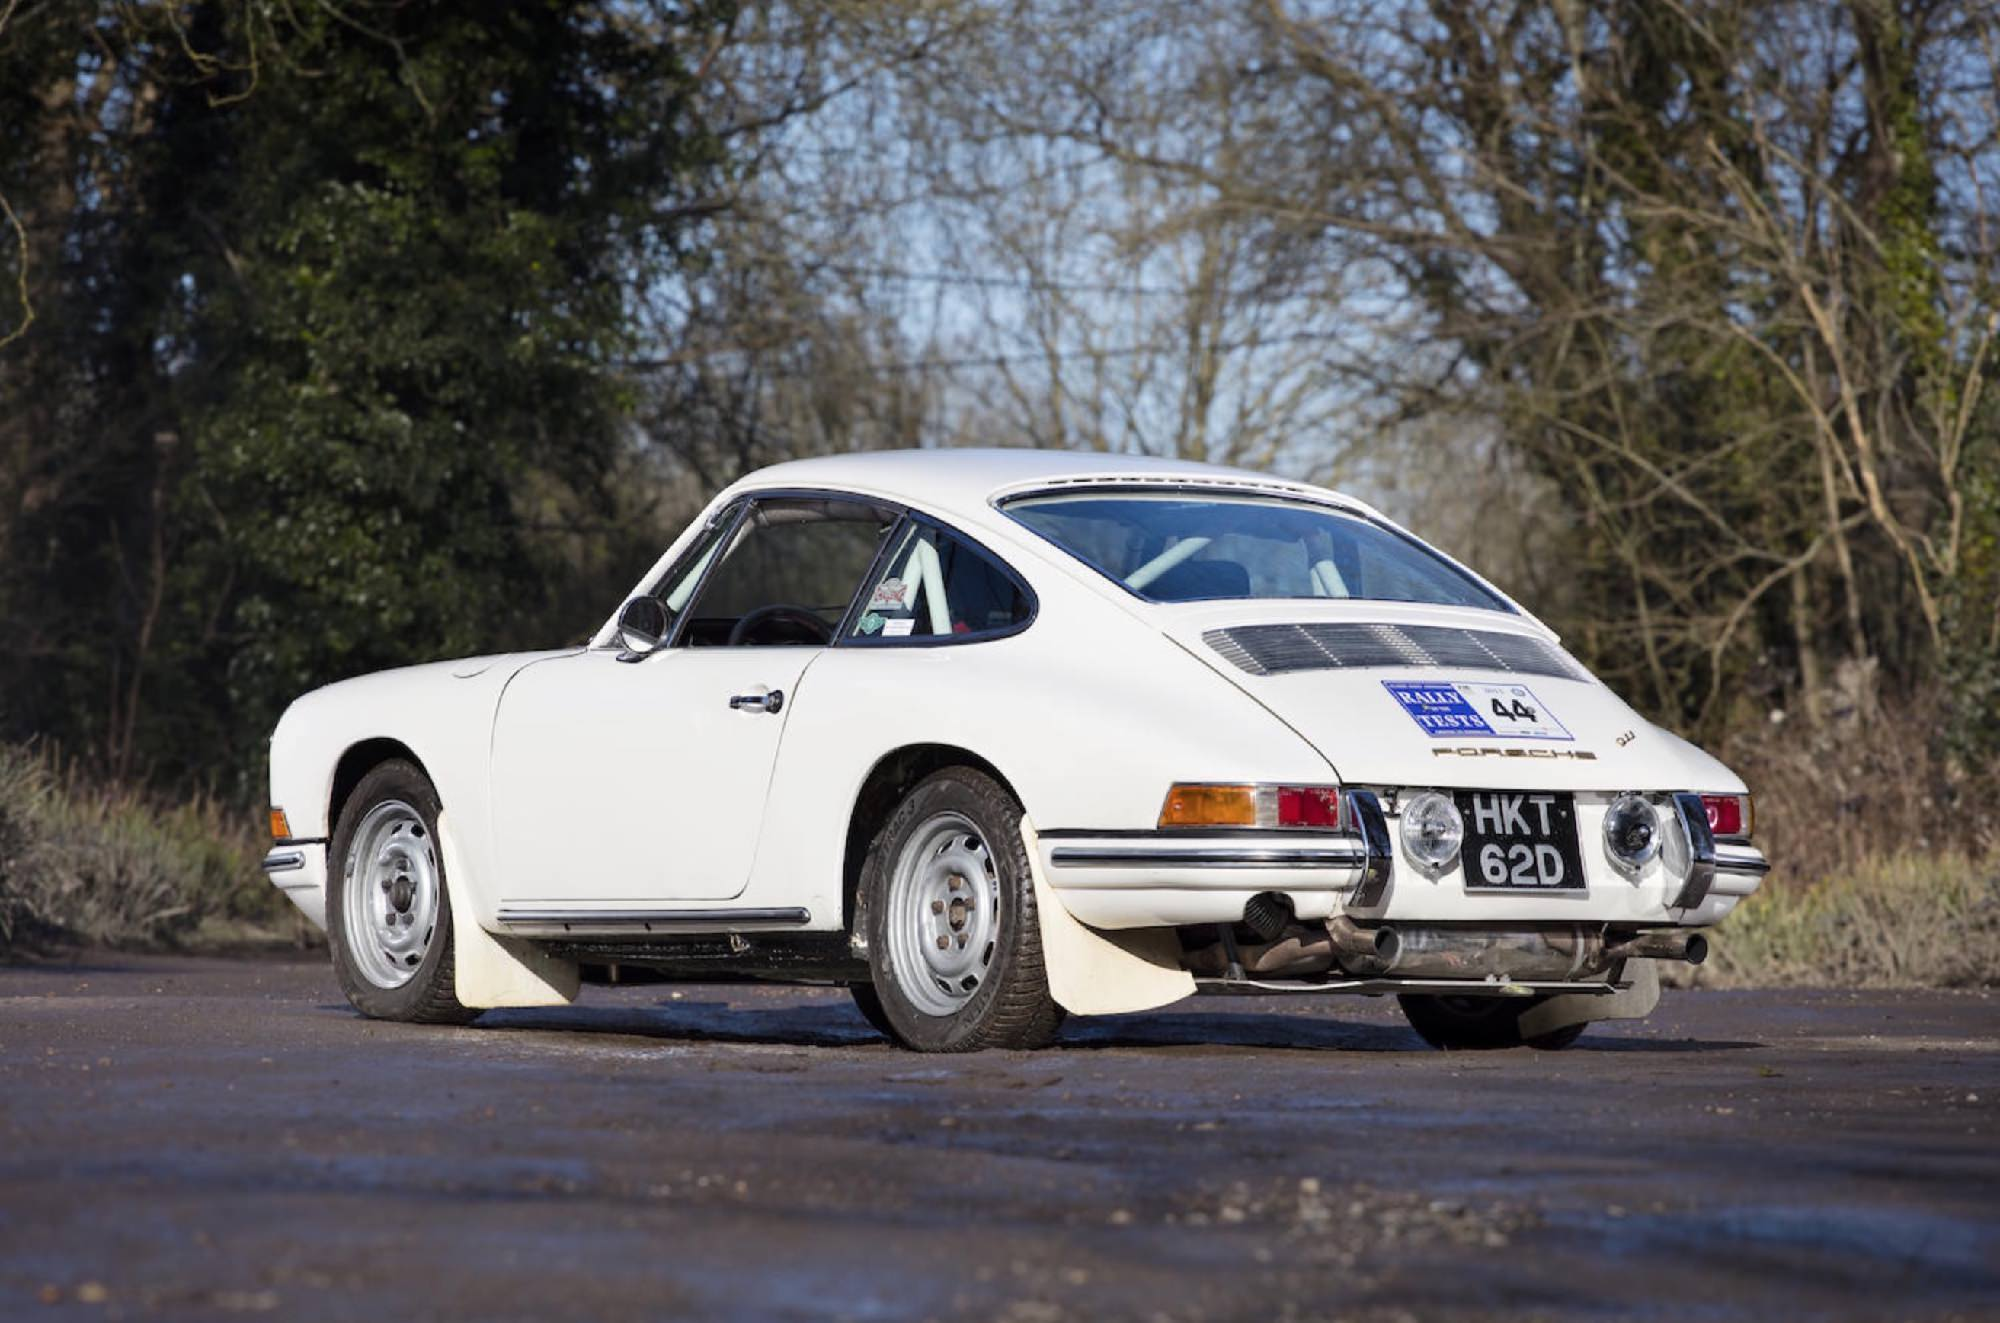 1966 Porsche 911 Swb Rally Car